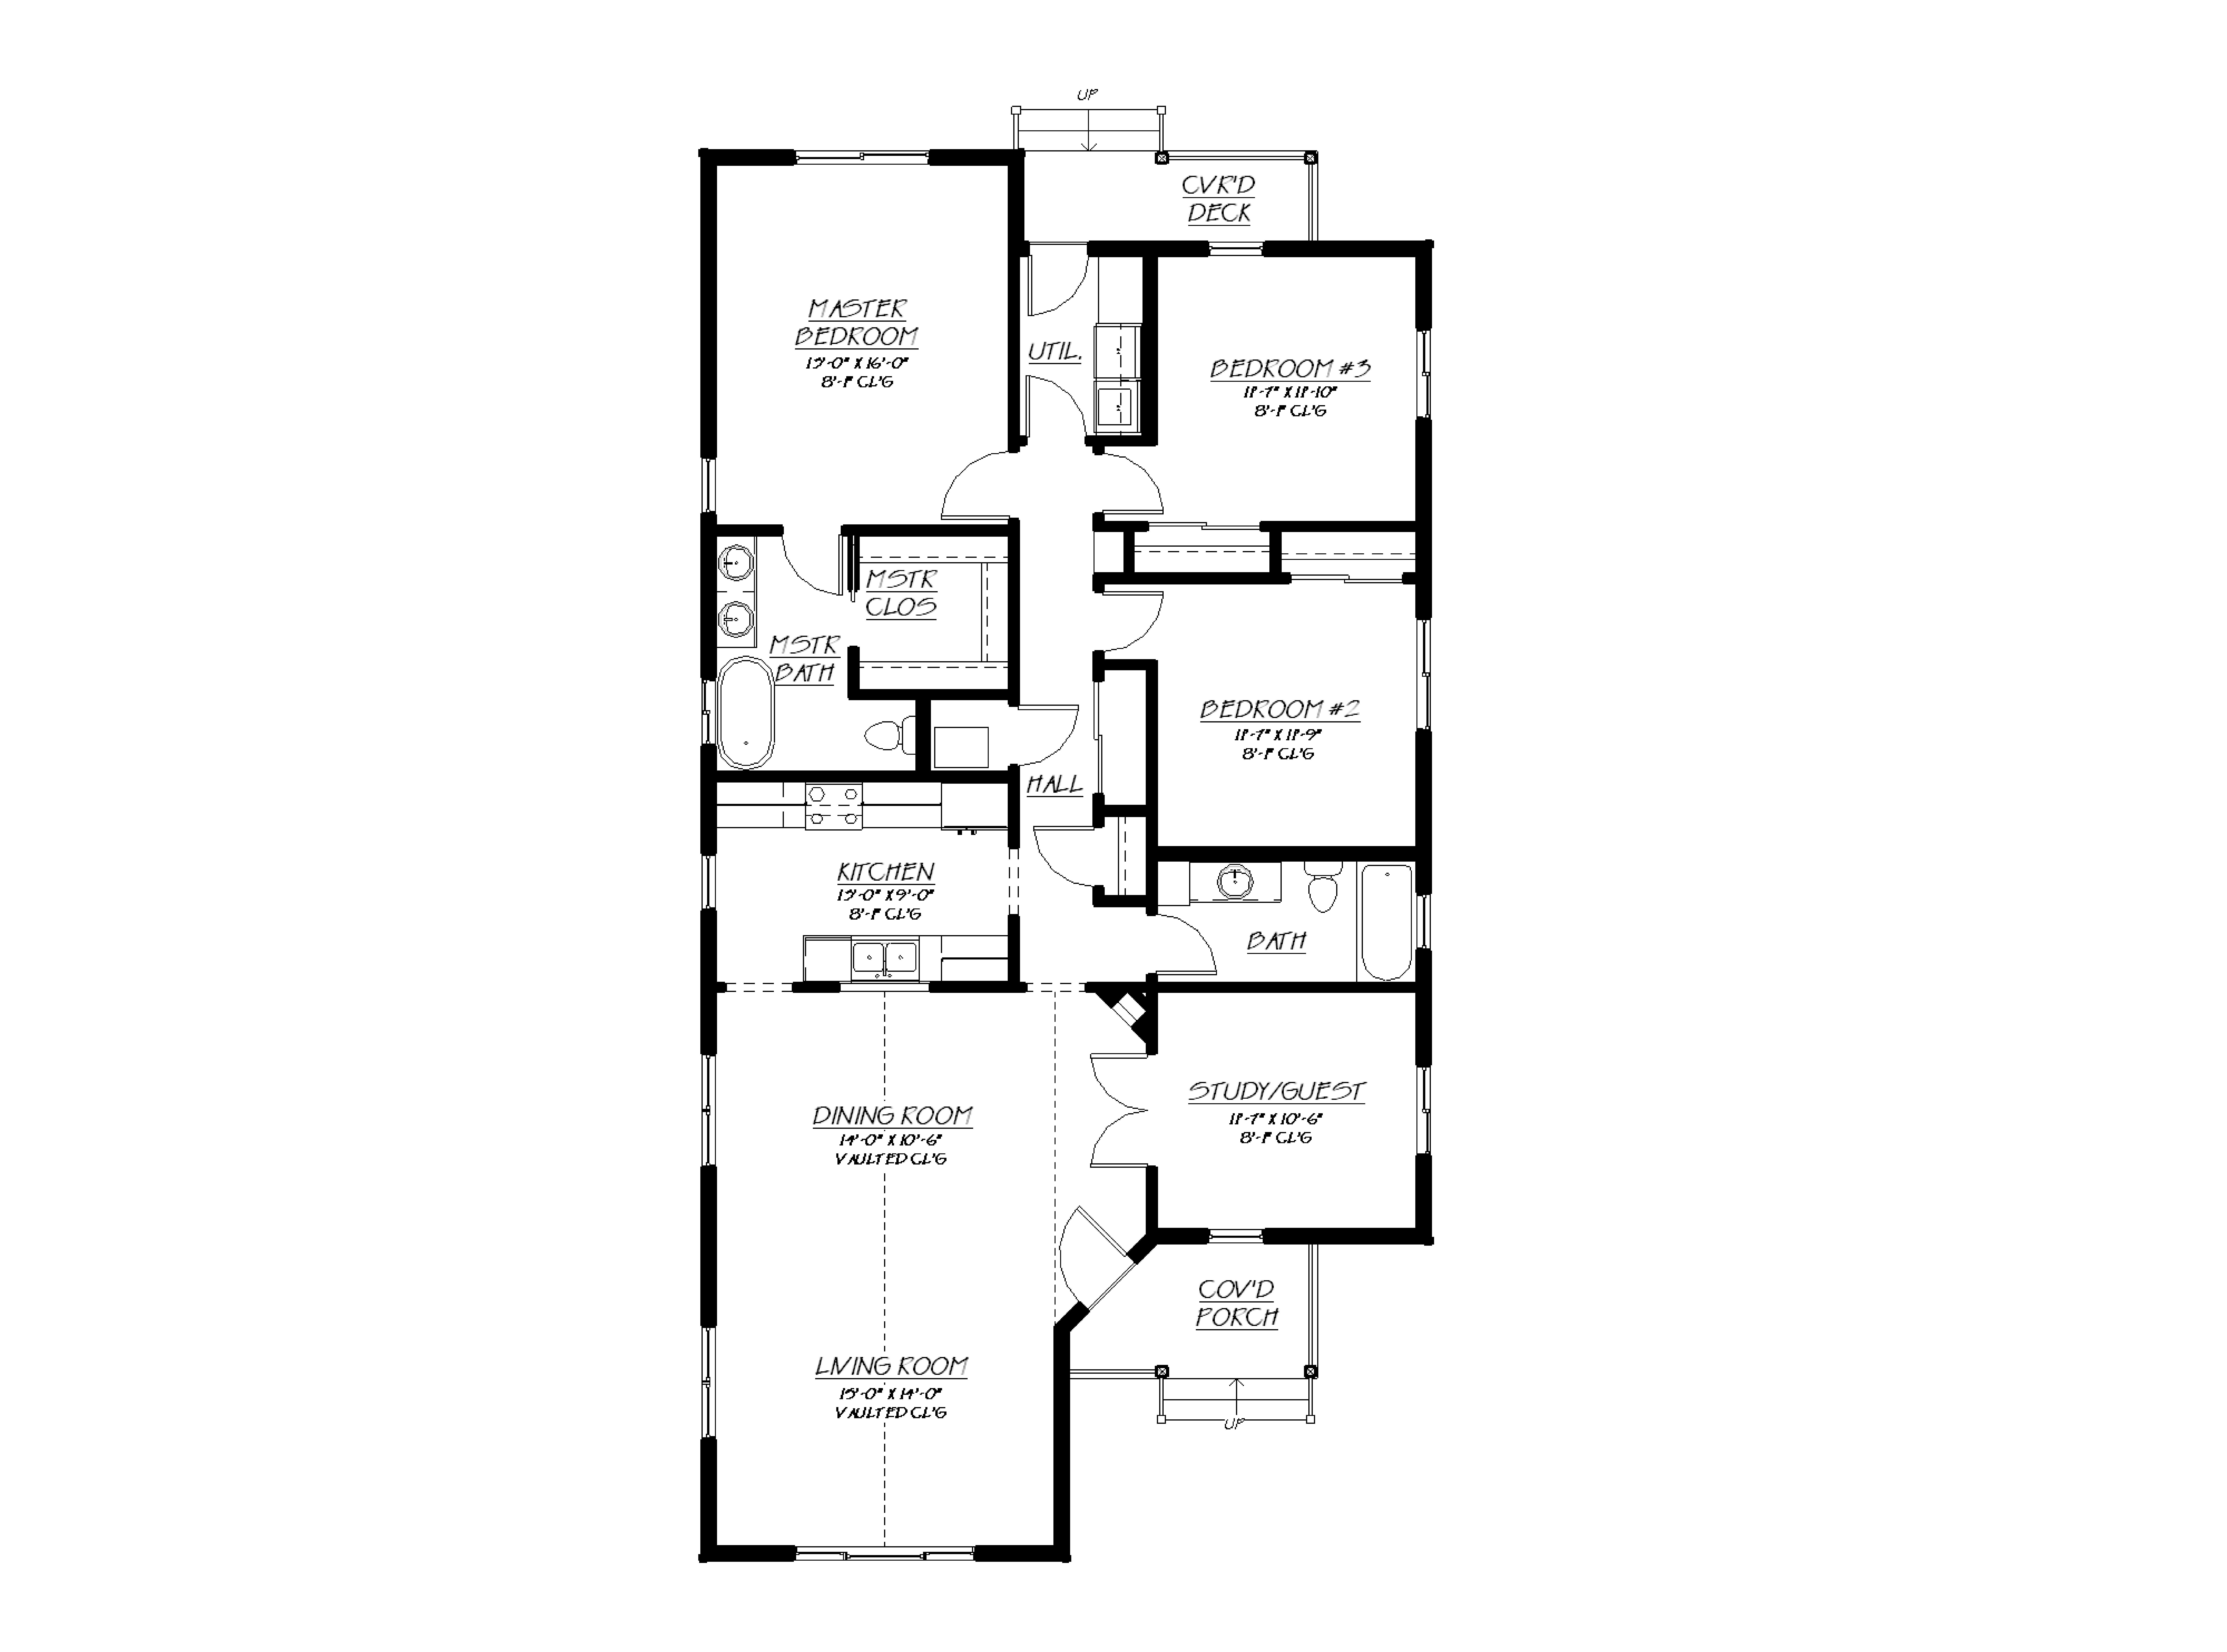 Floor Plan First Story for bungalow home plans BL-1035